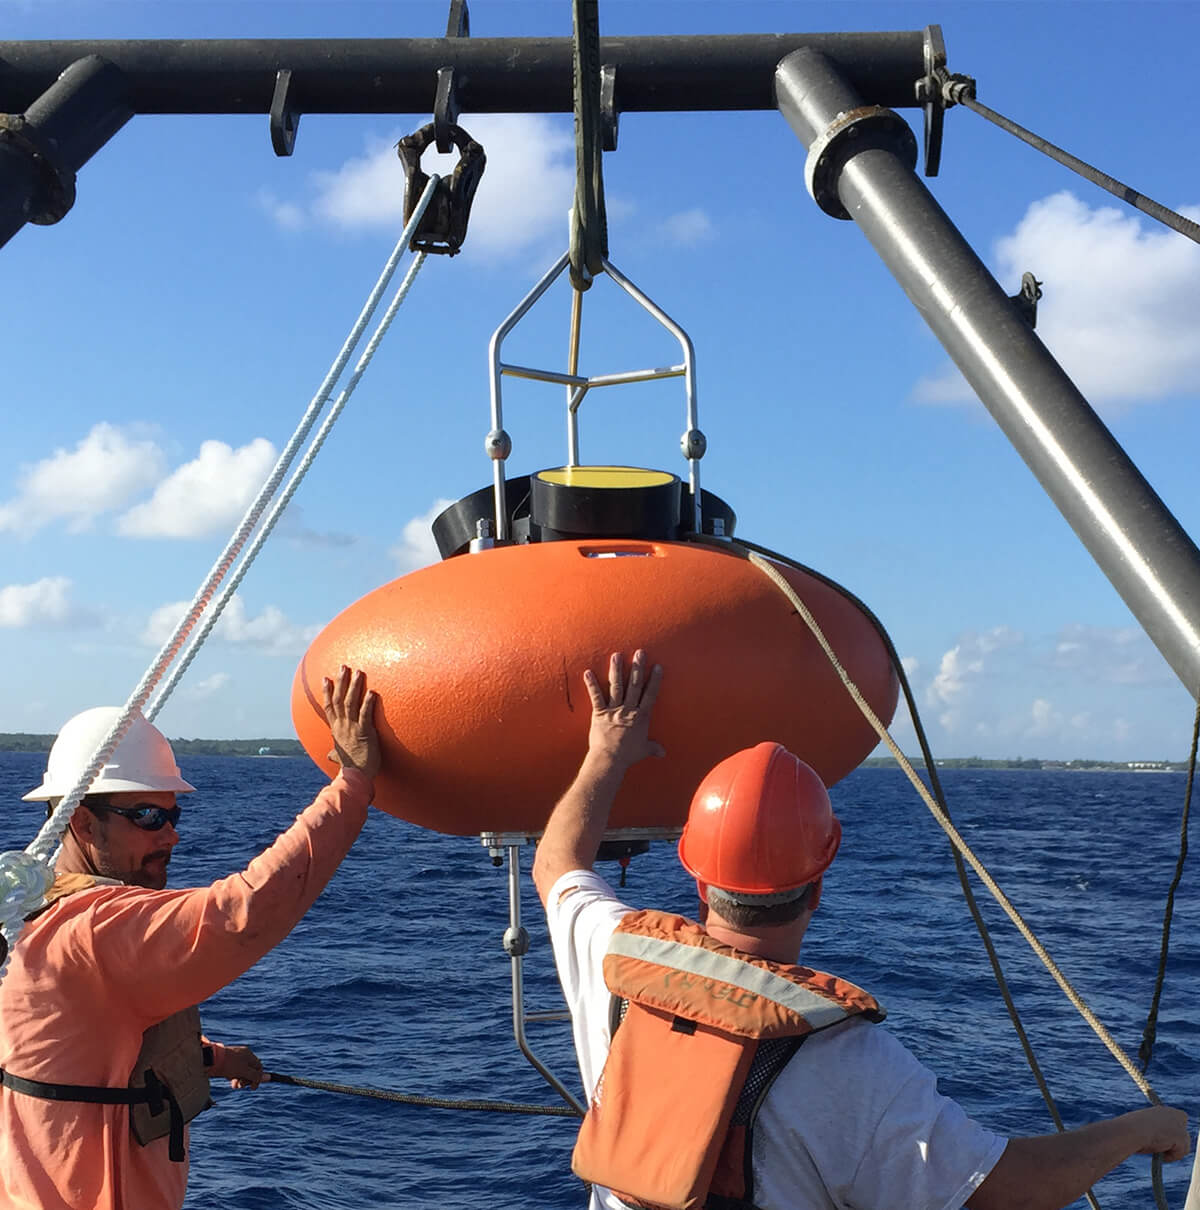 Elliptical ADCP Buoy for Nortek Instrument on Vessel